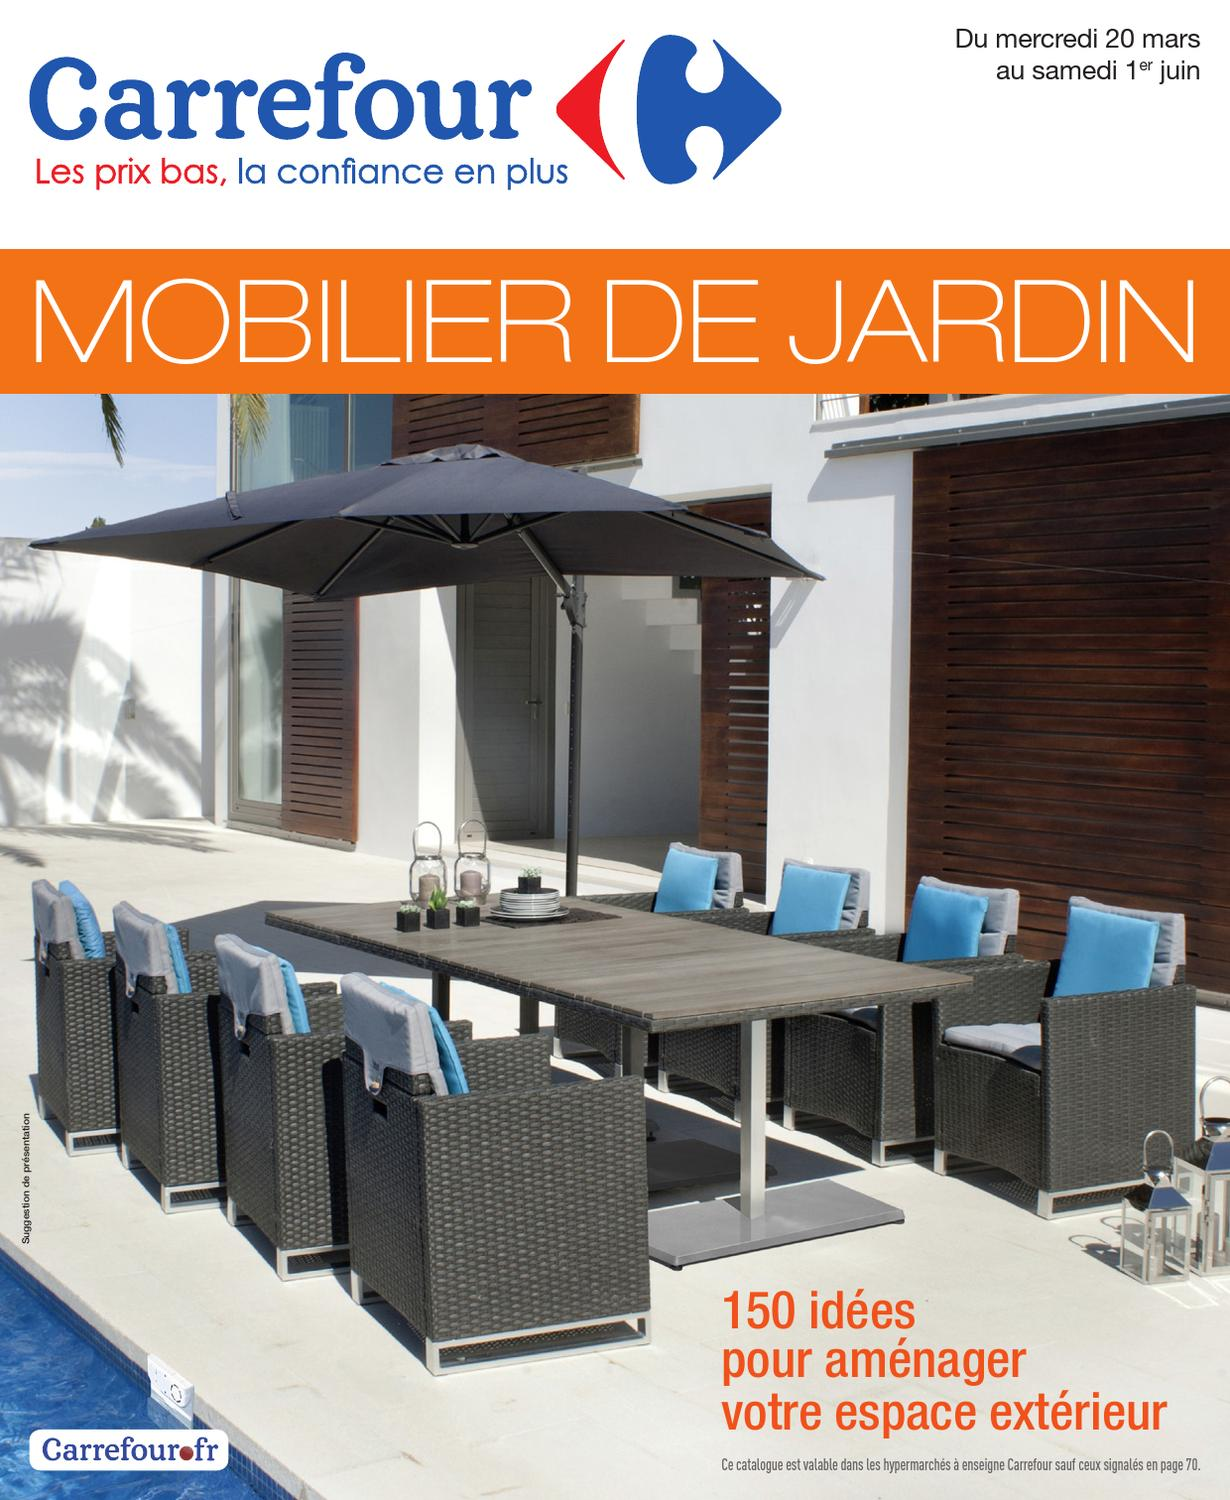 Carrefour_20.3-1.6-2013 by Proomo France - issuu